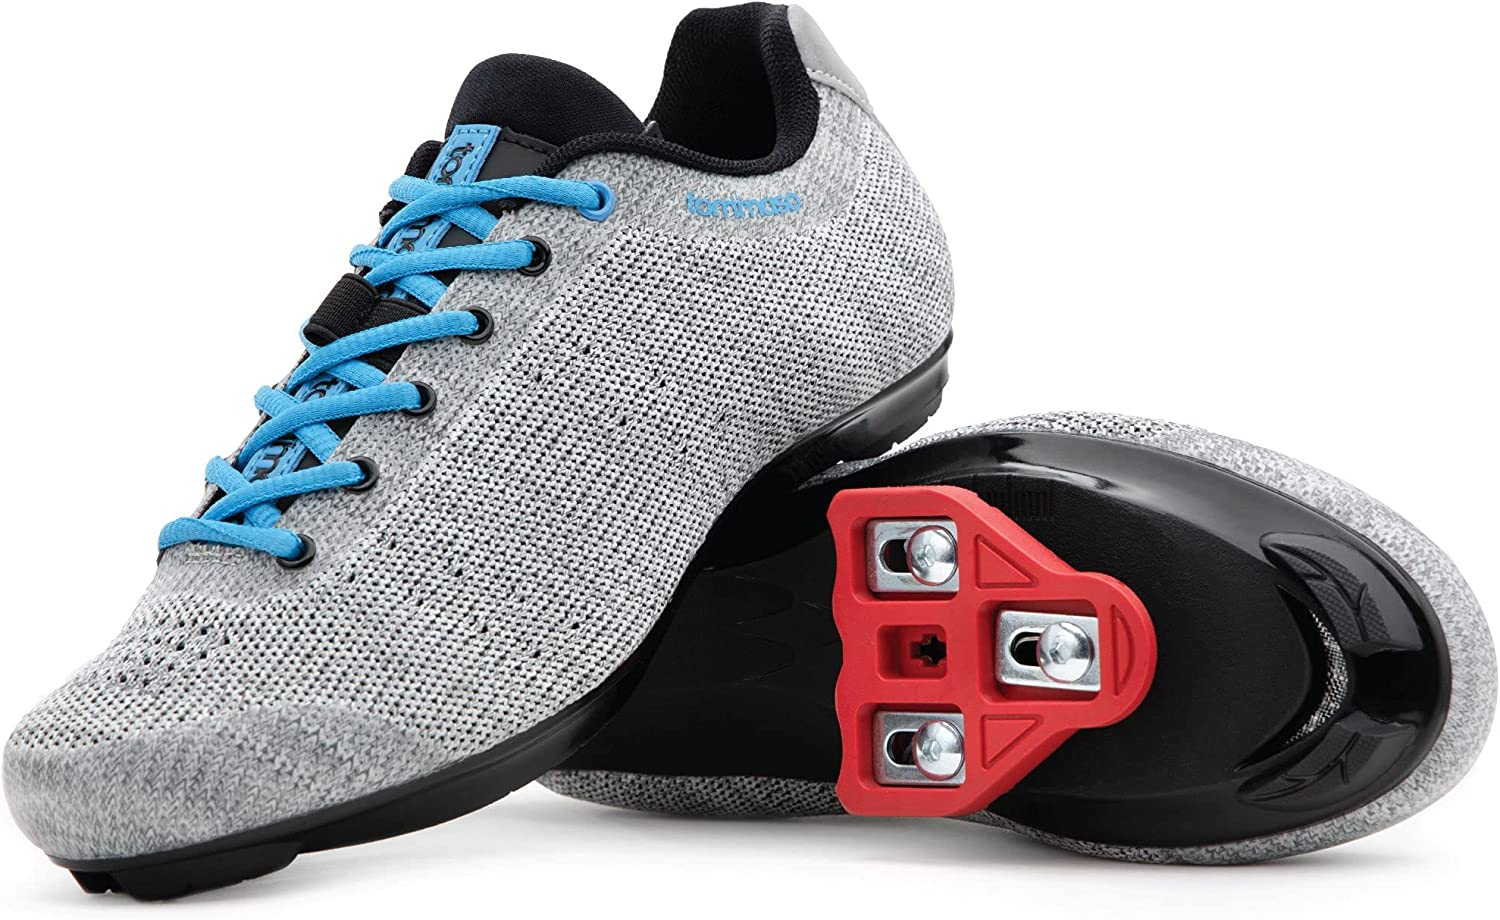 Lowest price challenge Tommaso Pista Aria Max 43% OFF Knit Women's Cycling Shoe Class Ready Indoor